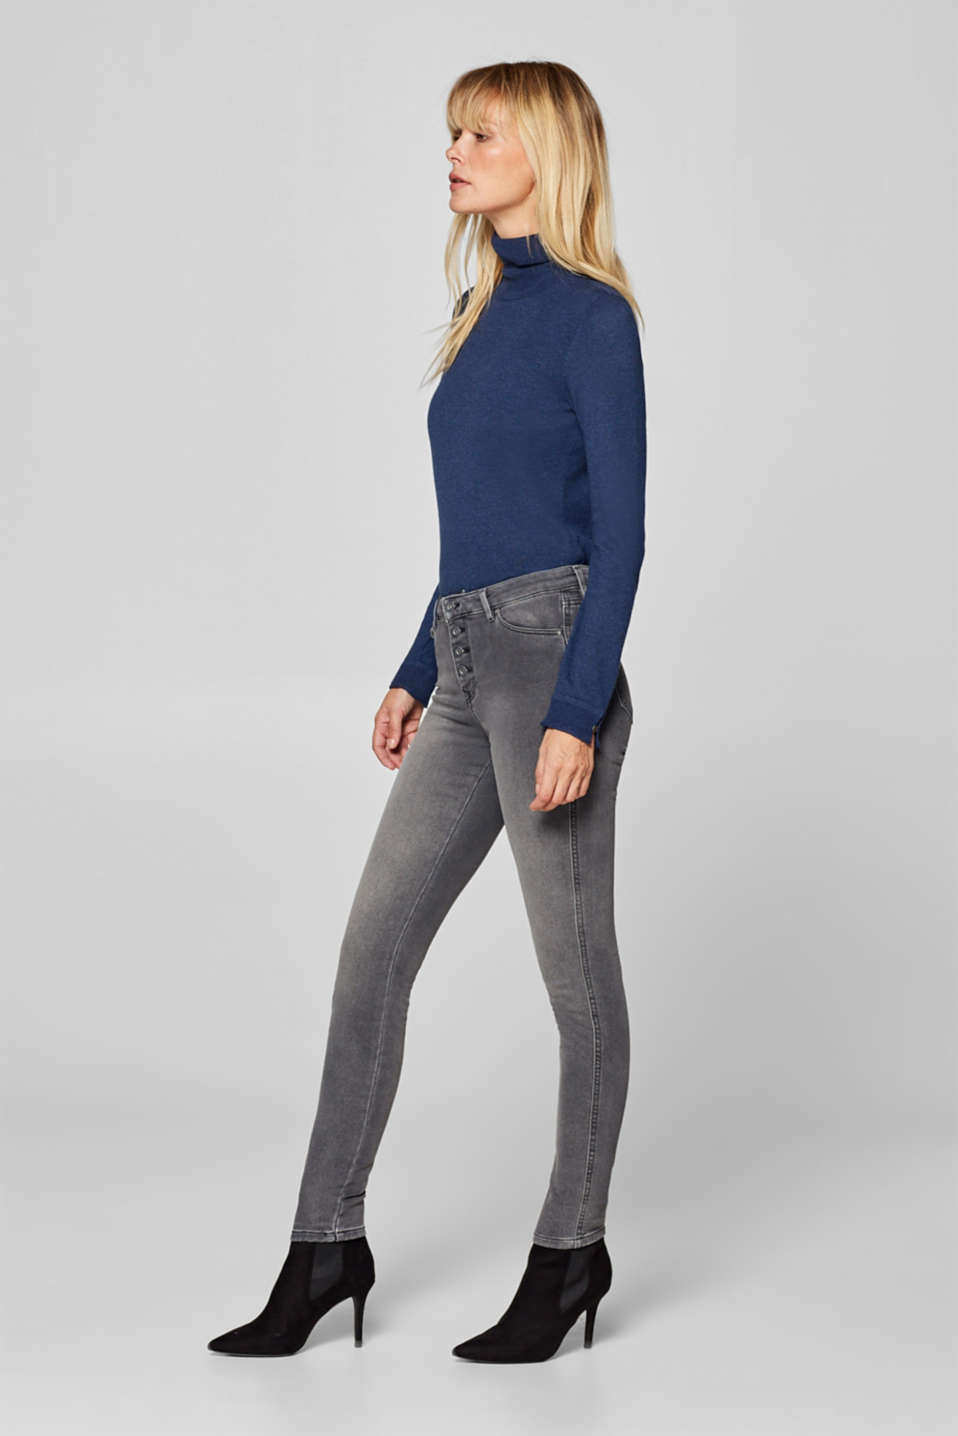 edc - Jeggings with a button placket in tracksuit fabric